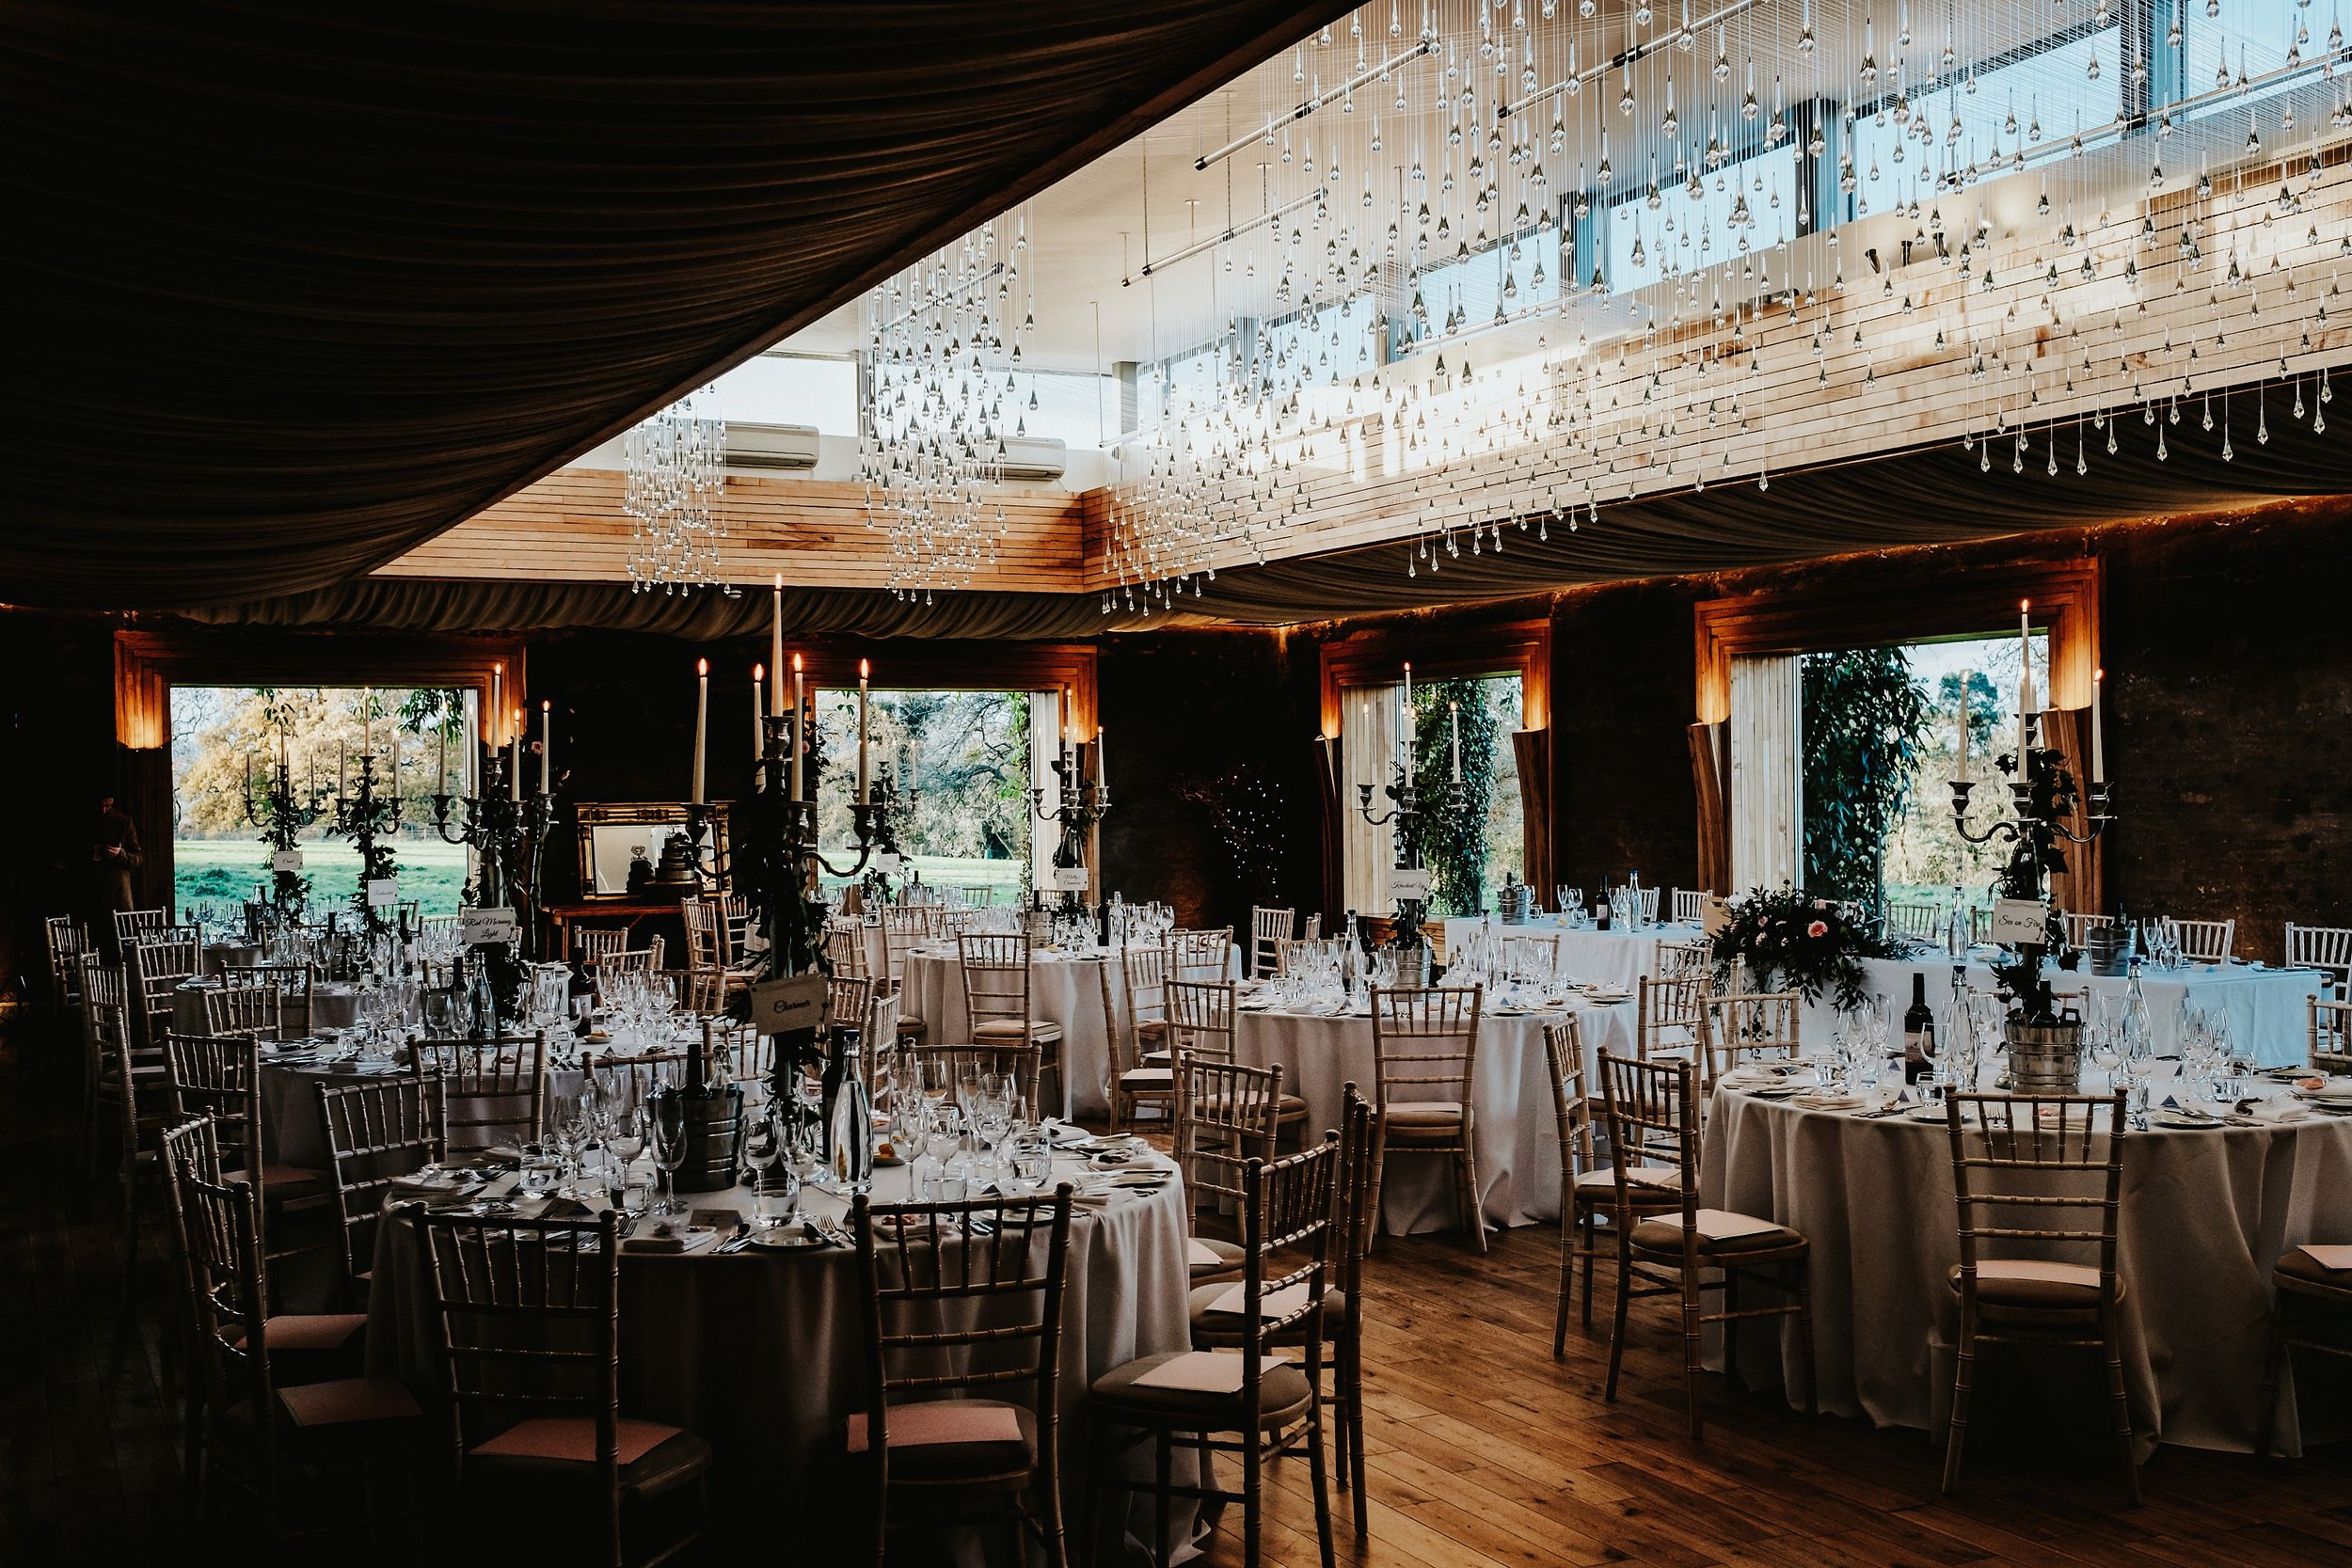 wedding chair covers melton mowbray rent chairs and tables leicestershire based photographer venues